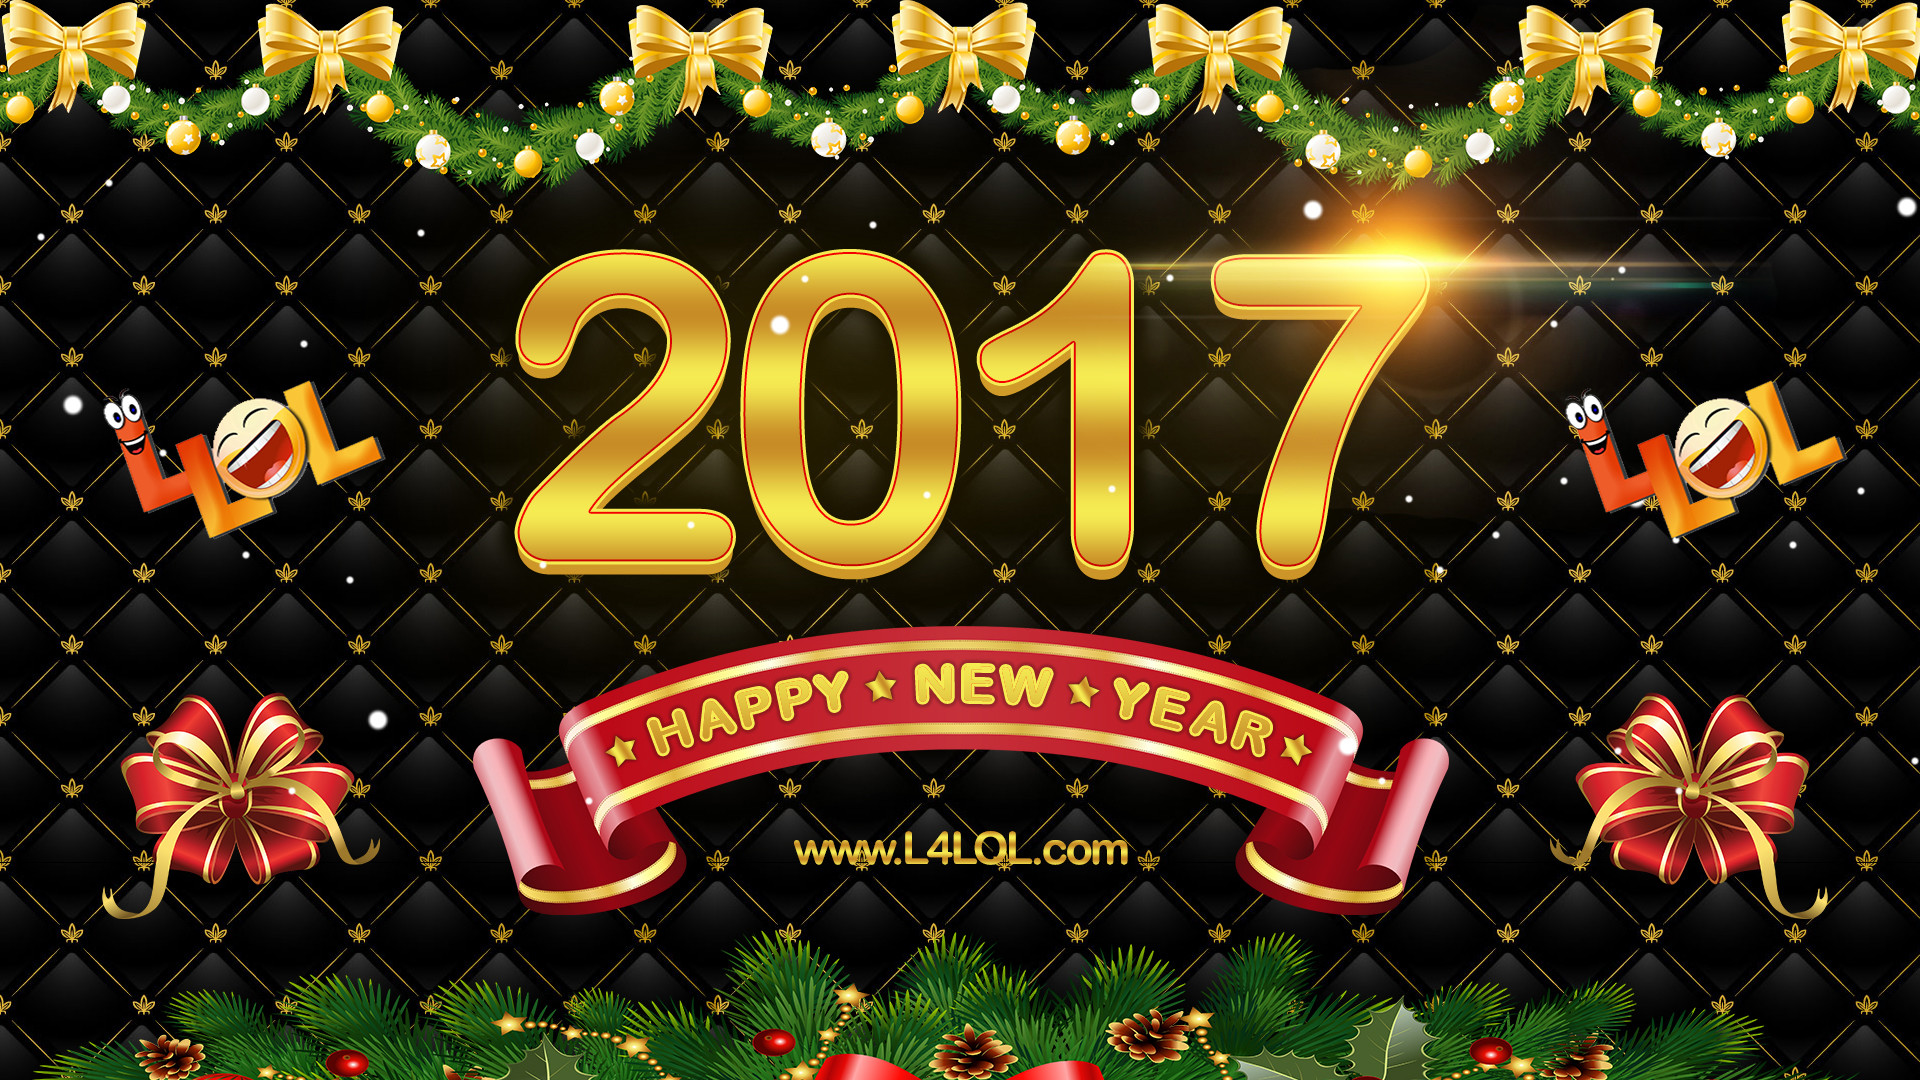 Happy New Year 2017 Wallpapers HD | Happy New Year 2017 Wallpapers